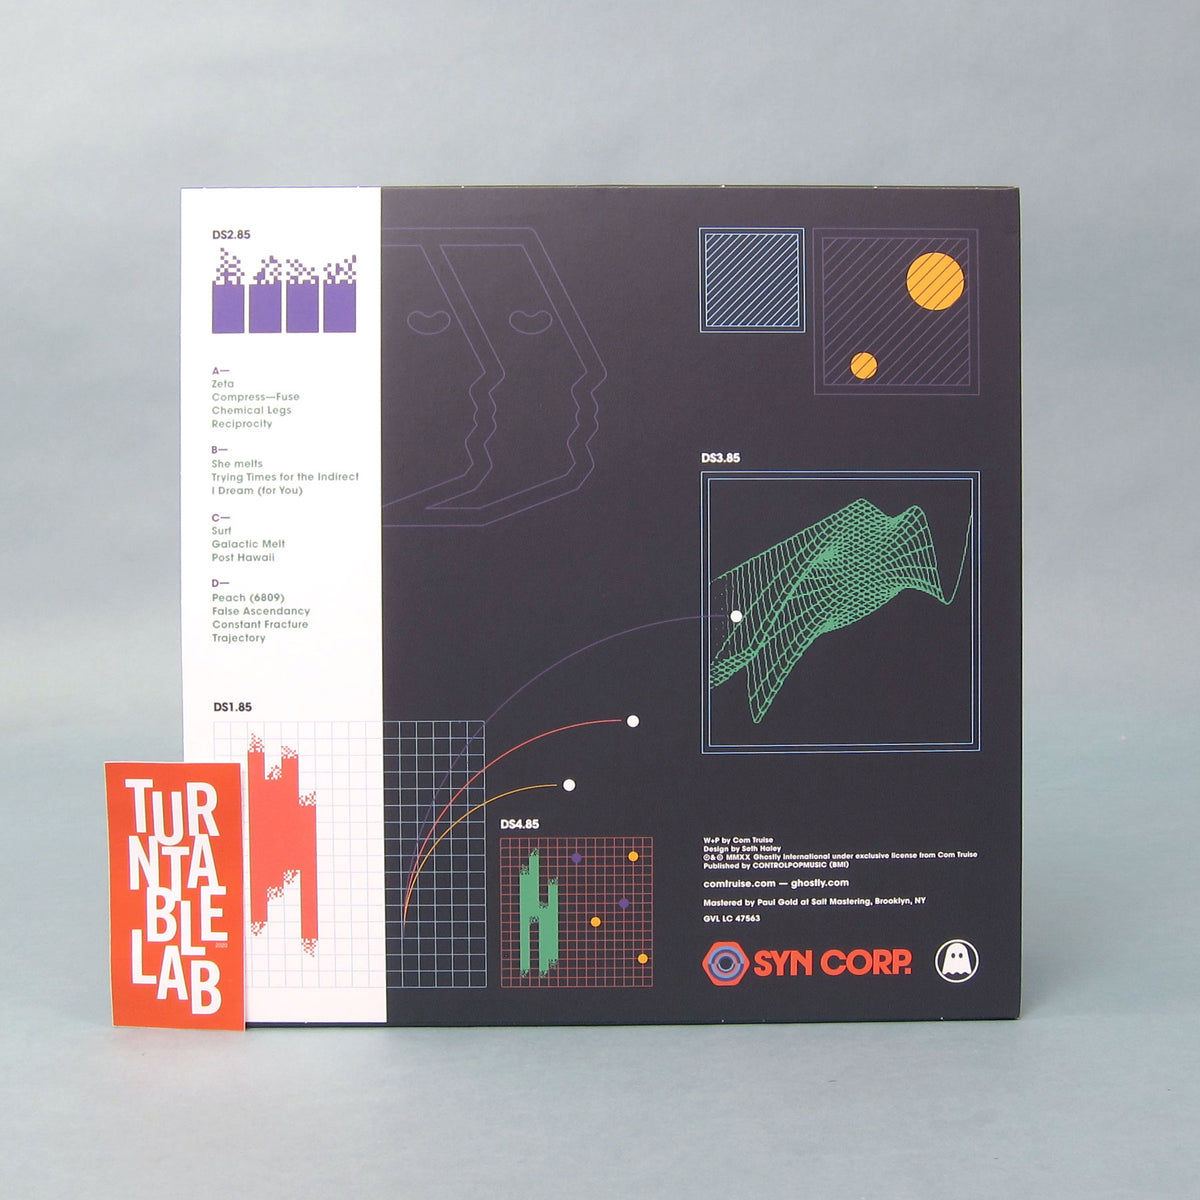 Com Truise: In Decay, Too (Colored Vinyl) Vinyl 2LP - Turntable Lab Exclusive